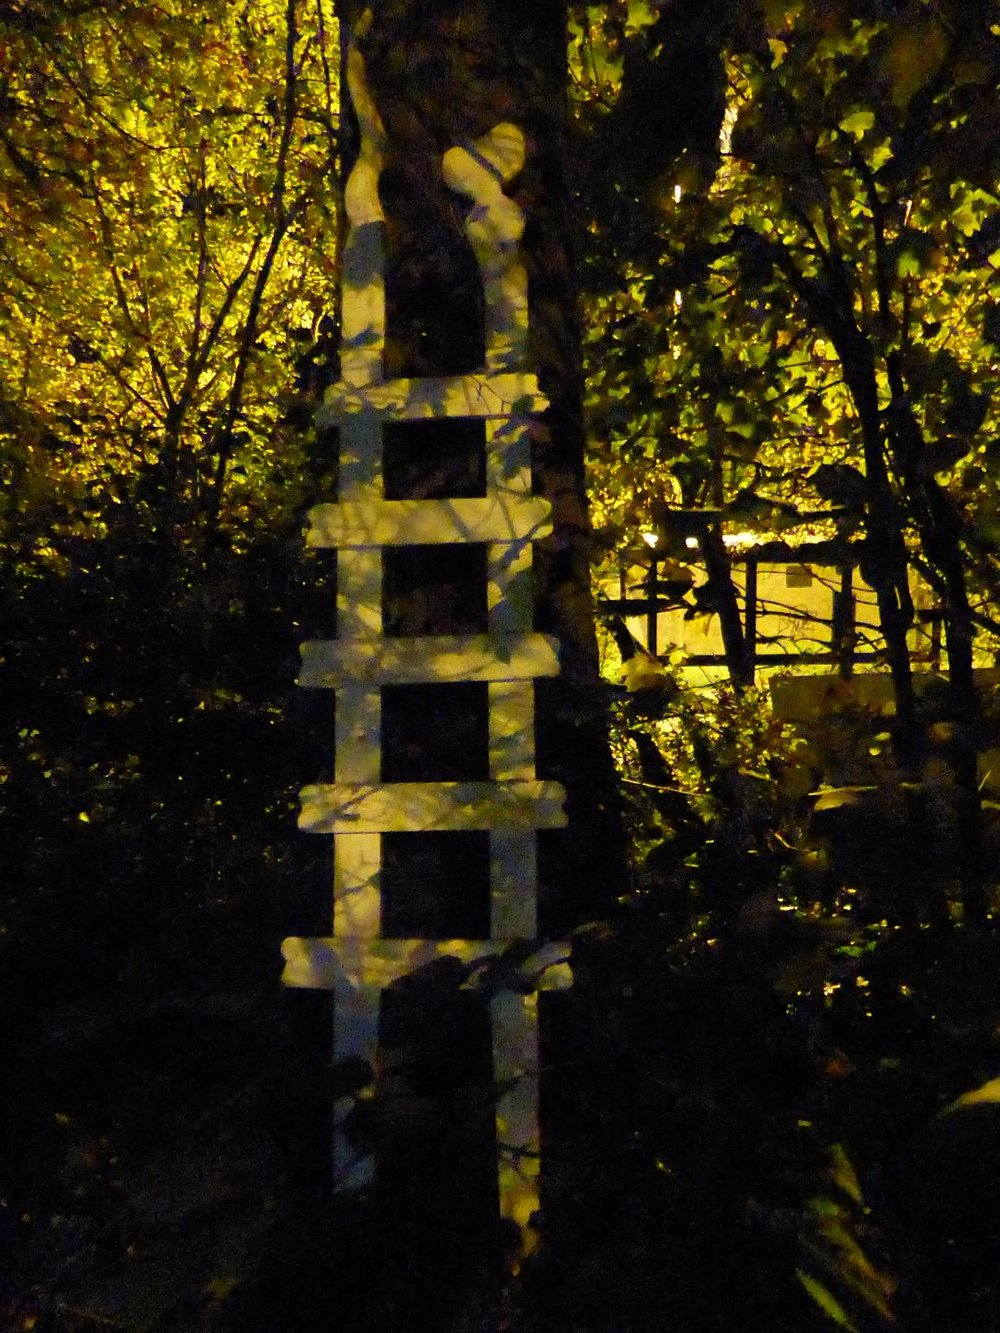 Cloud Gazer by night. Ladder Sculpture by Tony Eastman.jpg